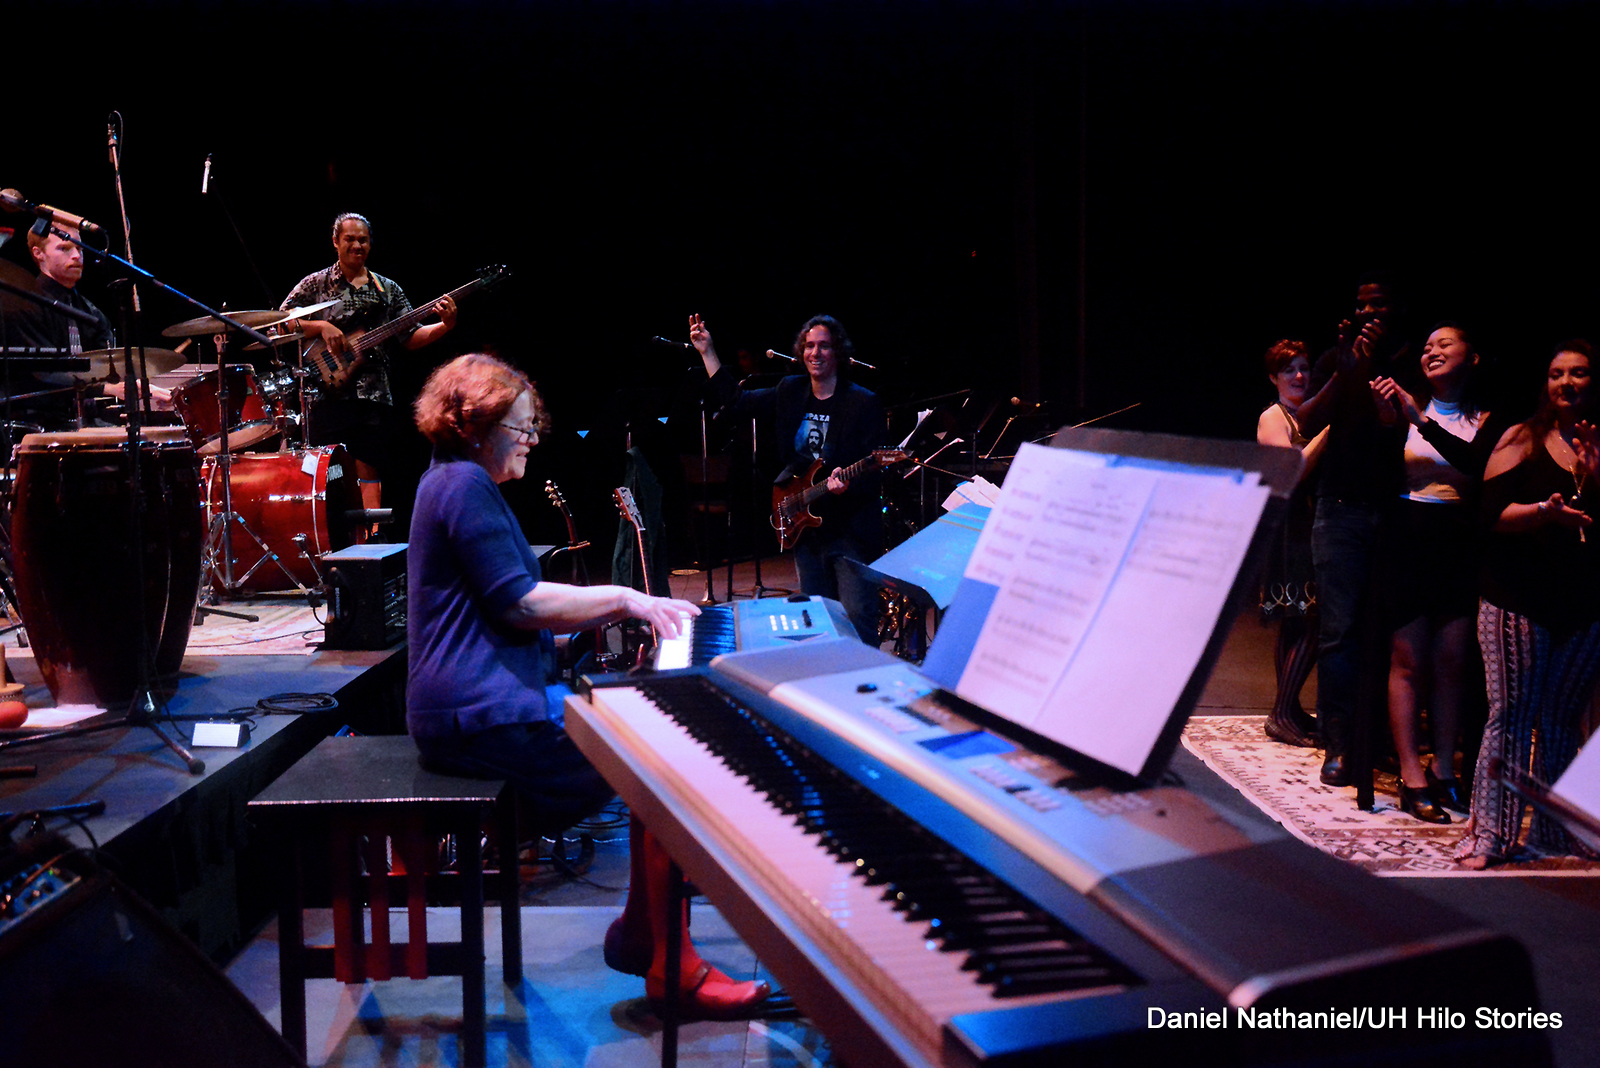 PHOTOS: UH Hilo Jazz Orchestra performs Frank Zappa Tribute Concert